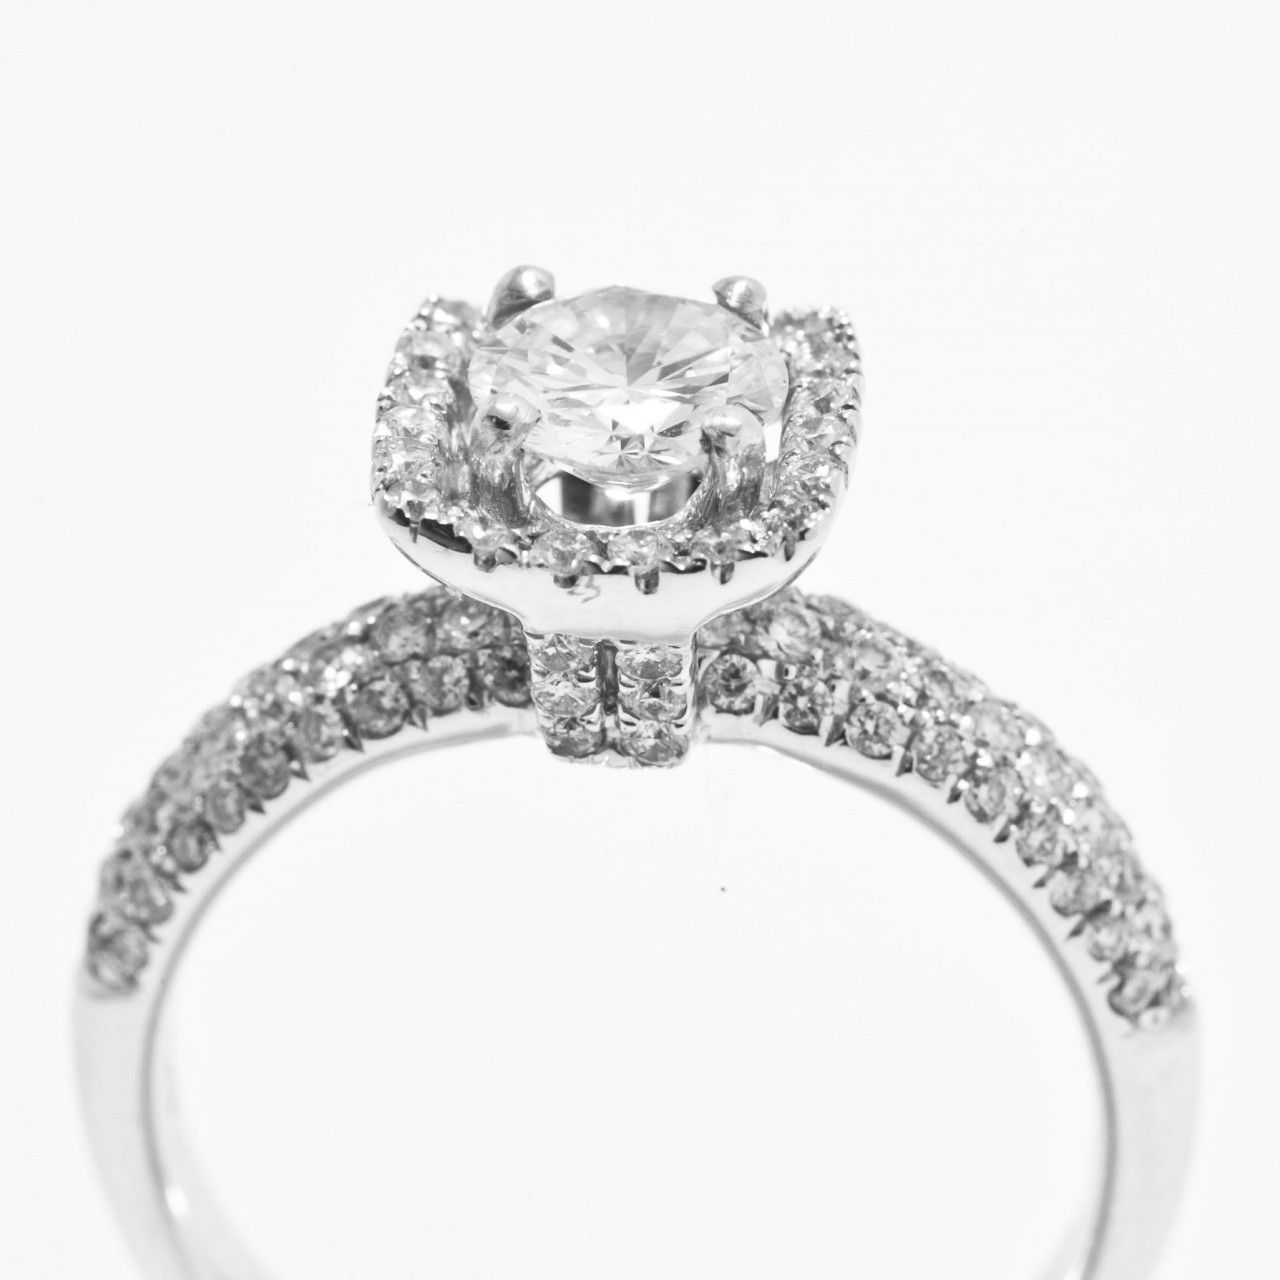 Pave diamond engagement ring pinterest engagement